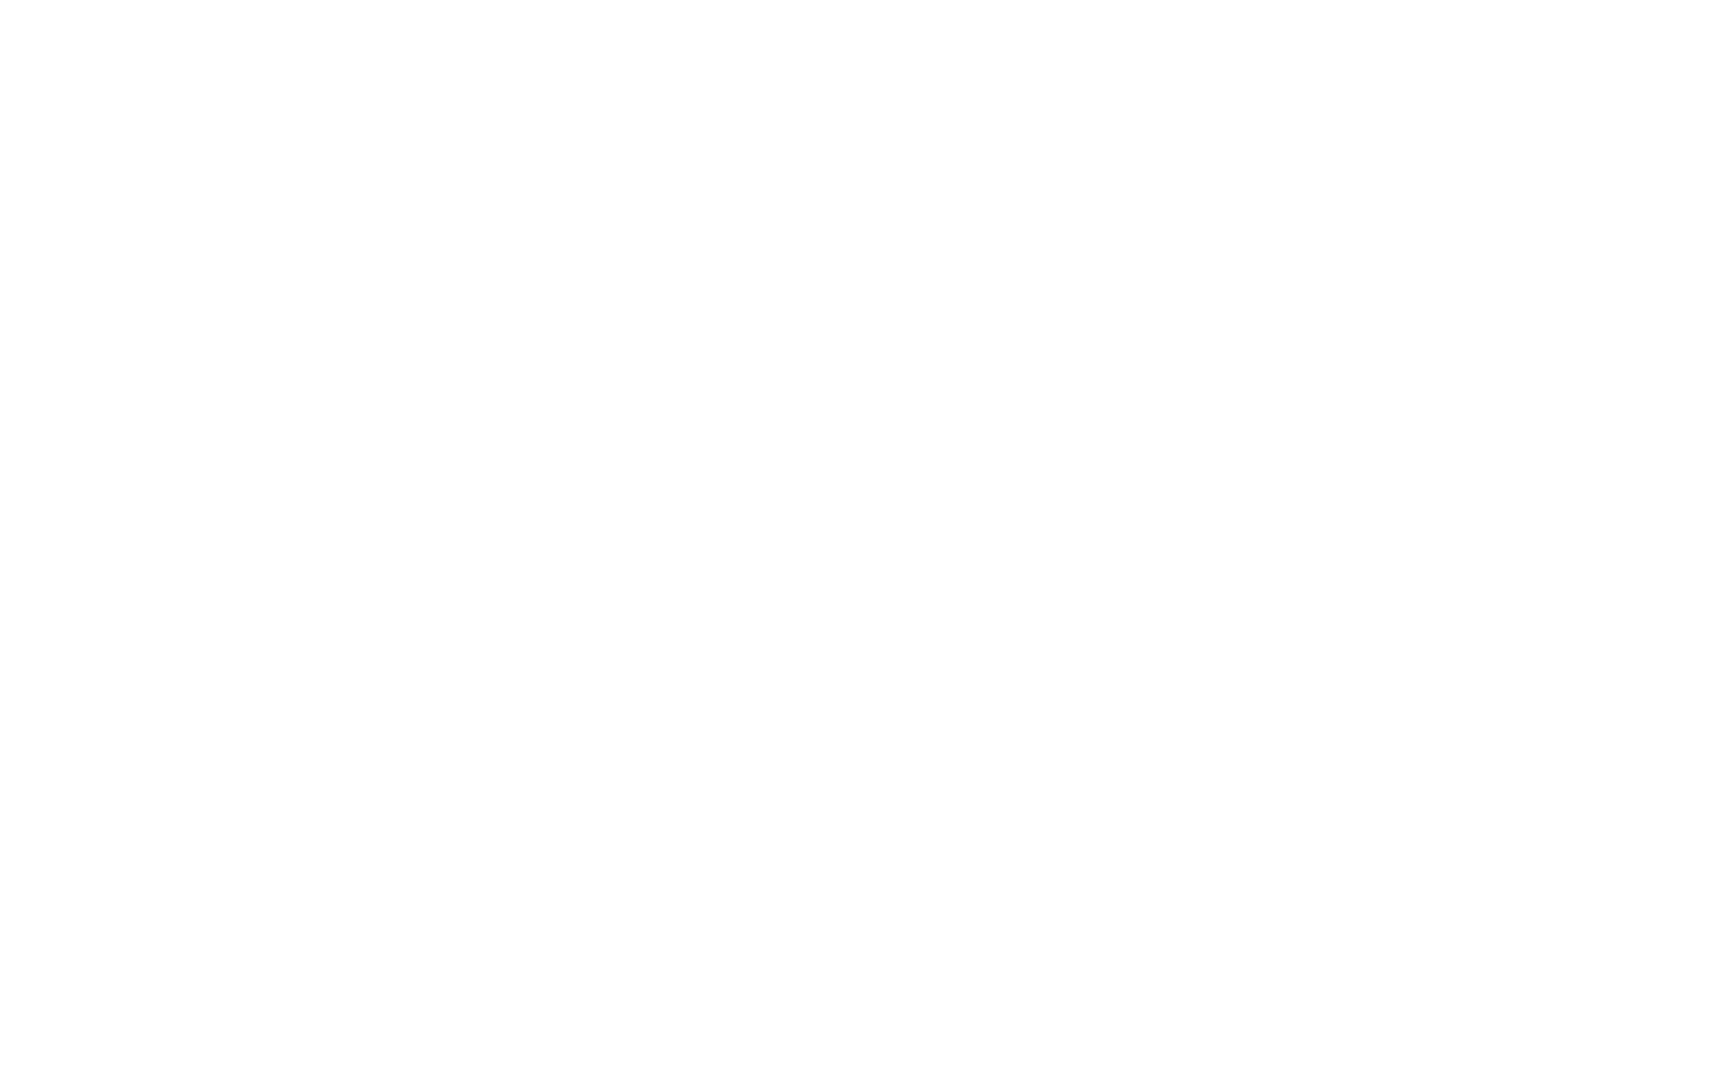 CPC Property Management - Commercial & Residential